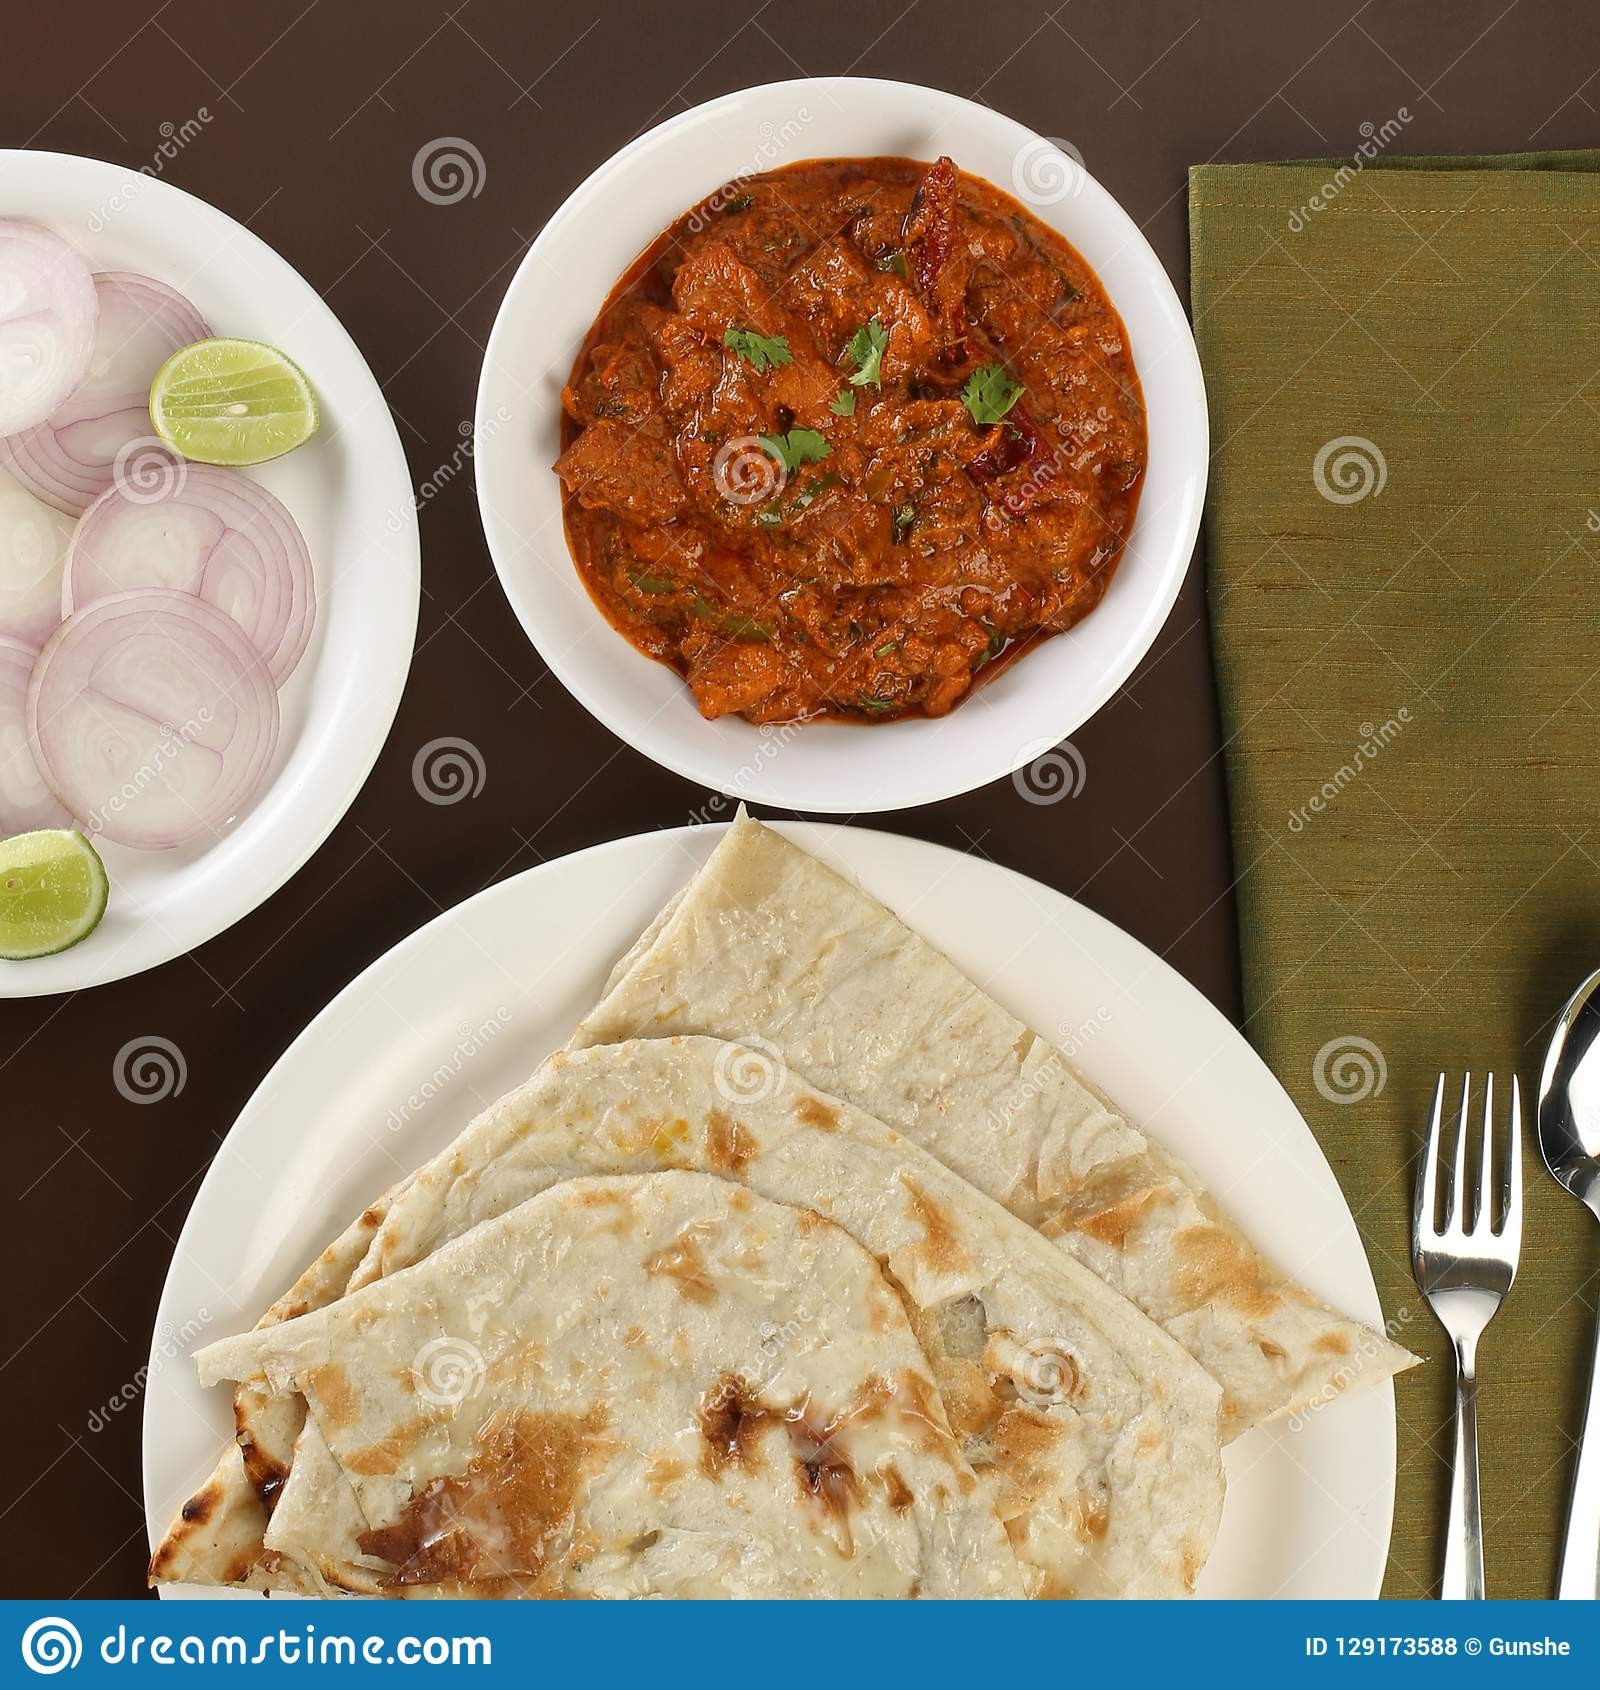 2 659 Butter Chicken Naan Photos Free Royalty Free Stock Photos From Dreamstime